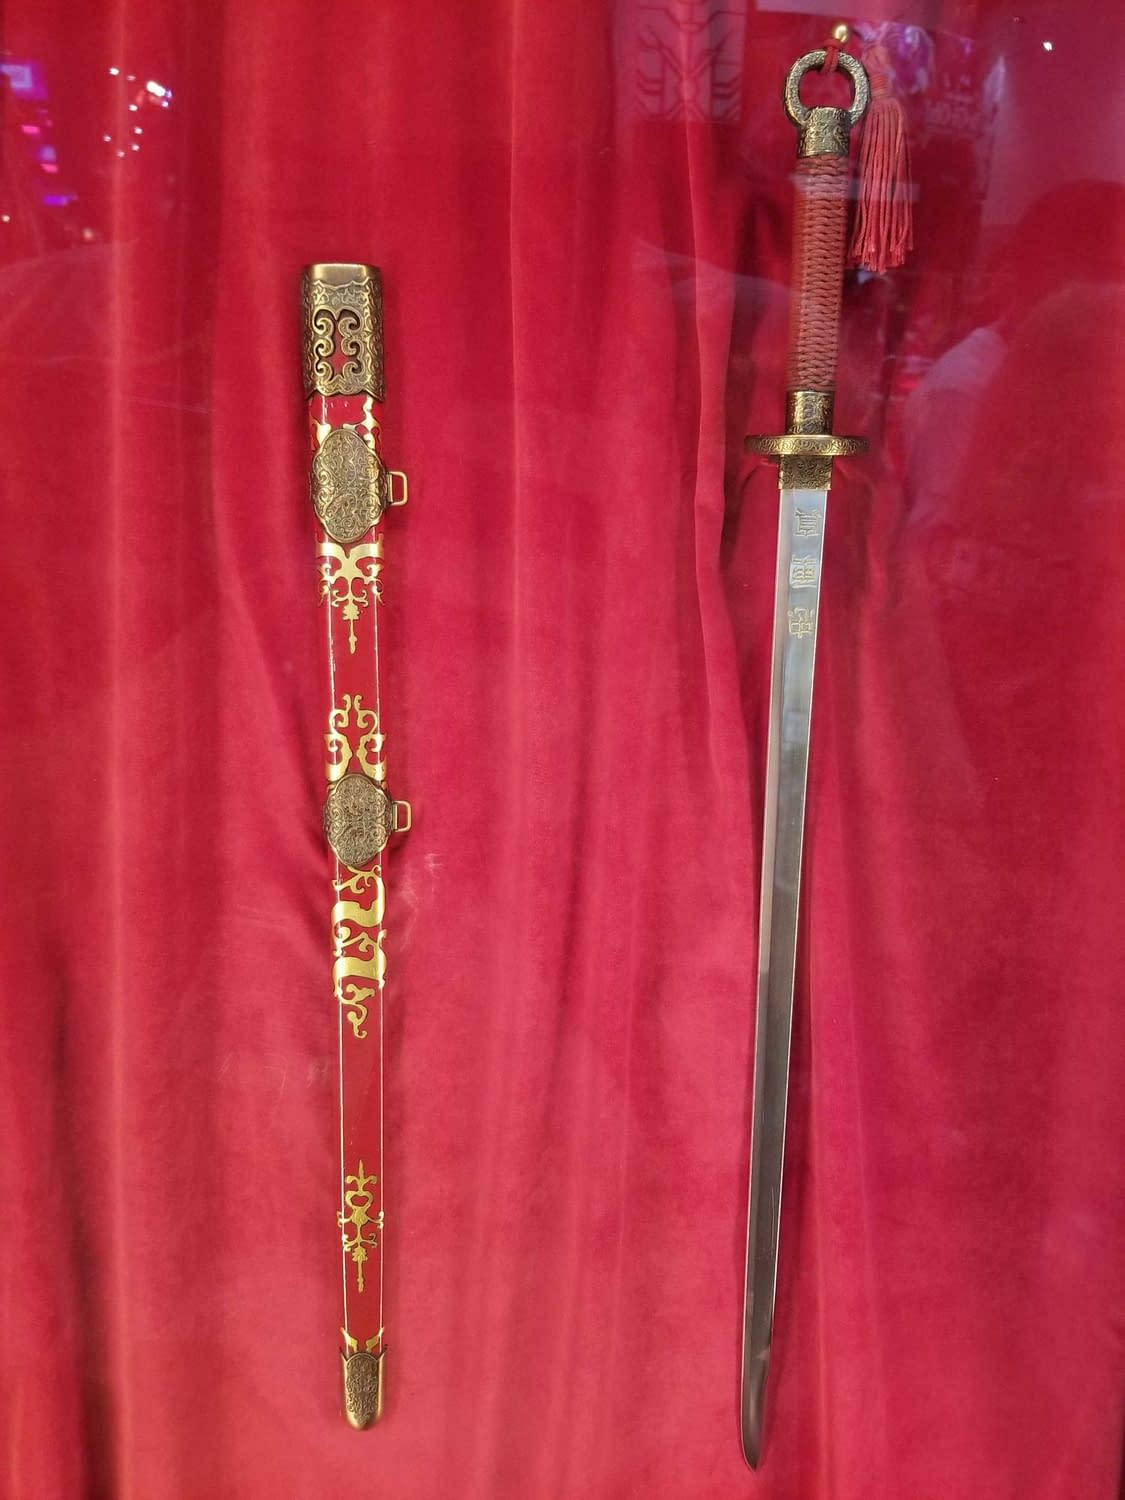 """The Sword from """"Mulan"""" is on Display at SDCC"""